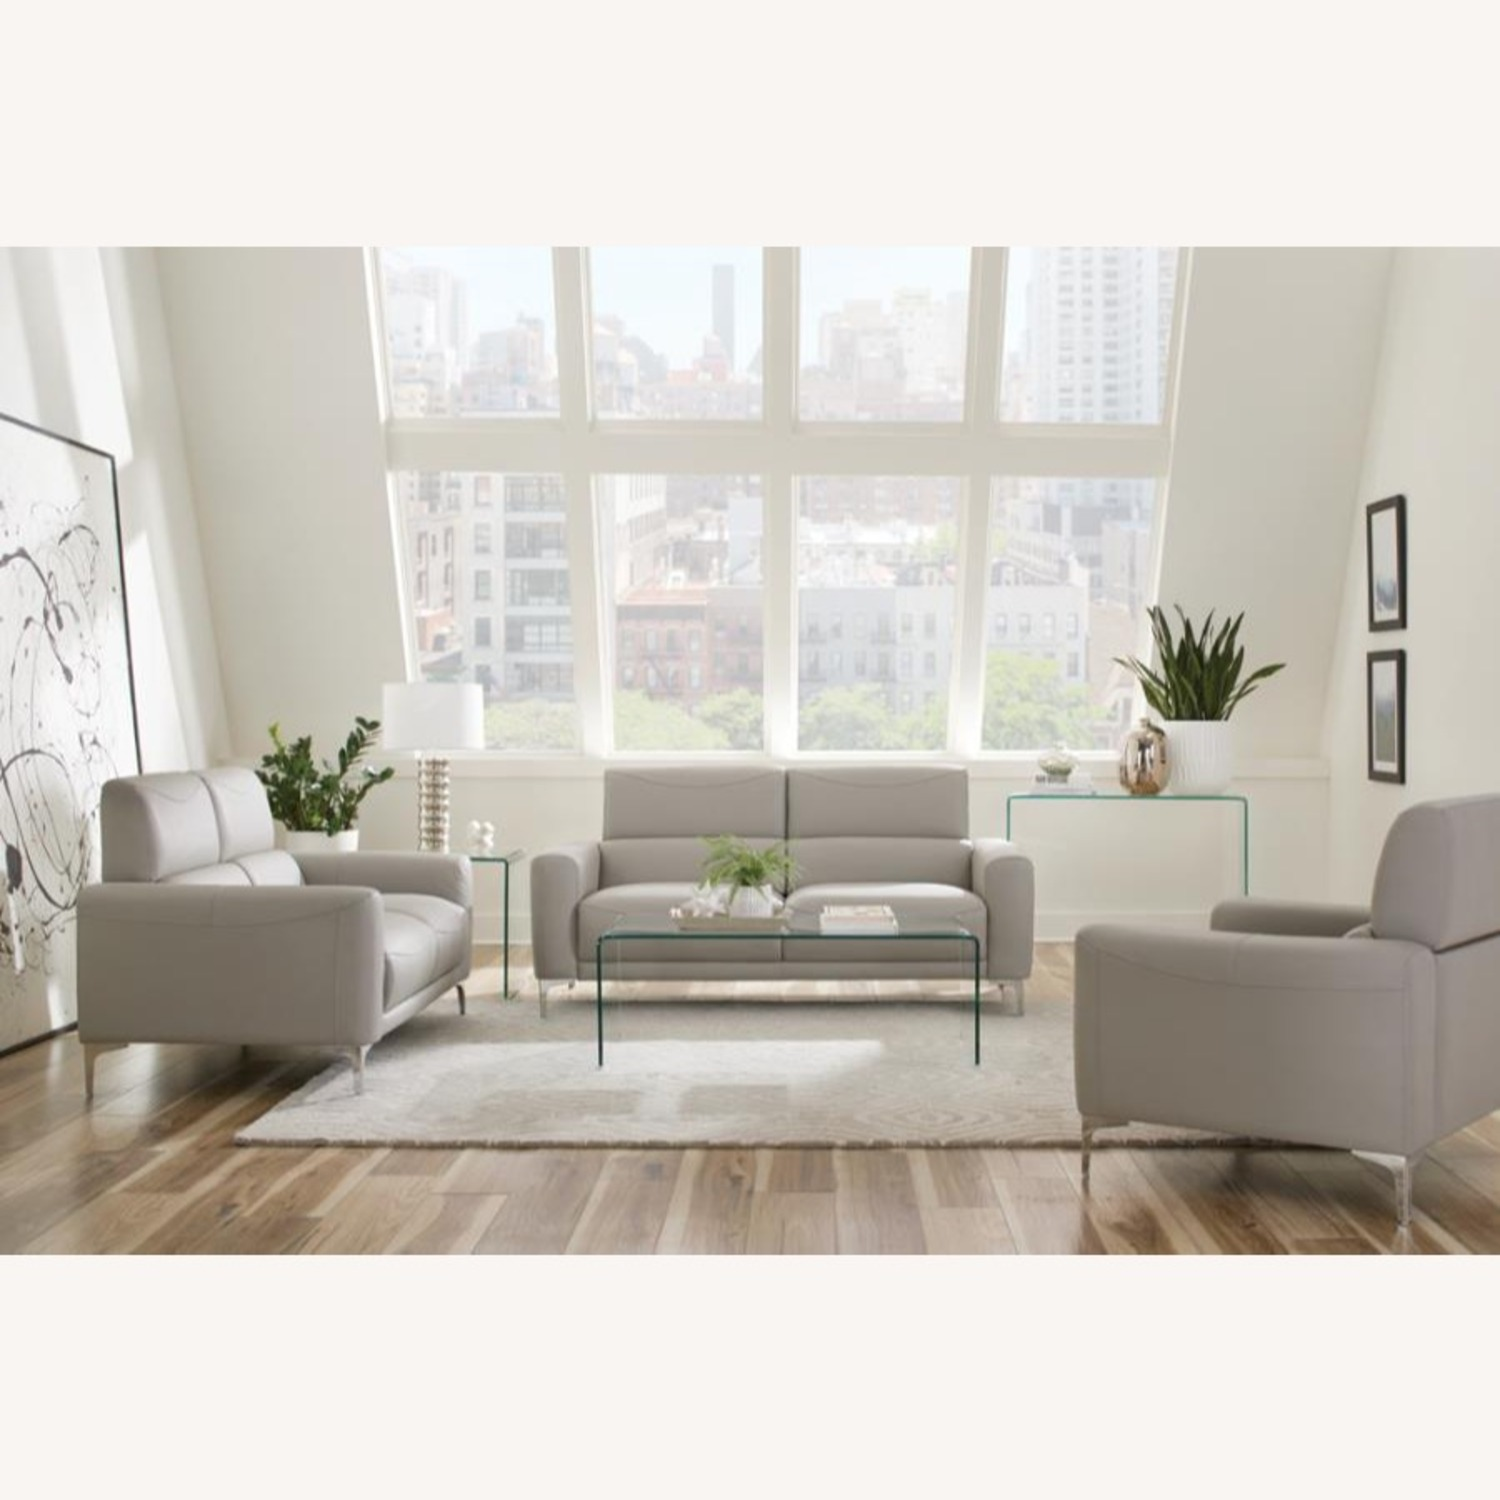 Loveseat In Soft Taupe Leatherette Upholstery - image-2